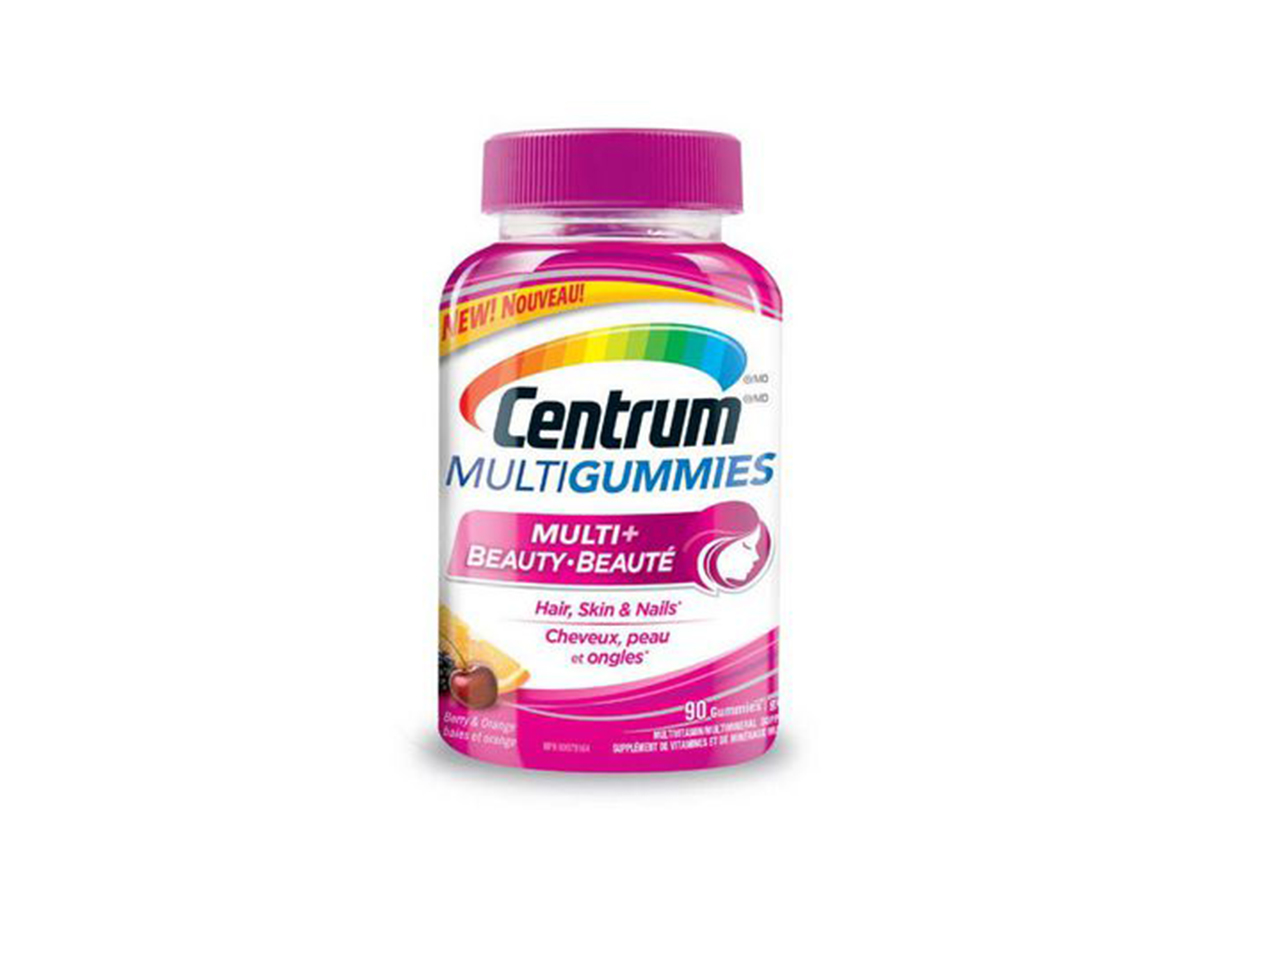 Centrum Multigummies Multi+Beatuy